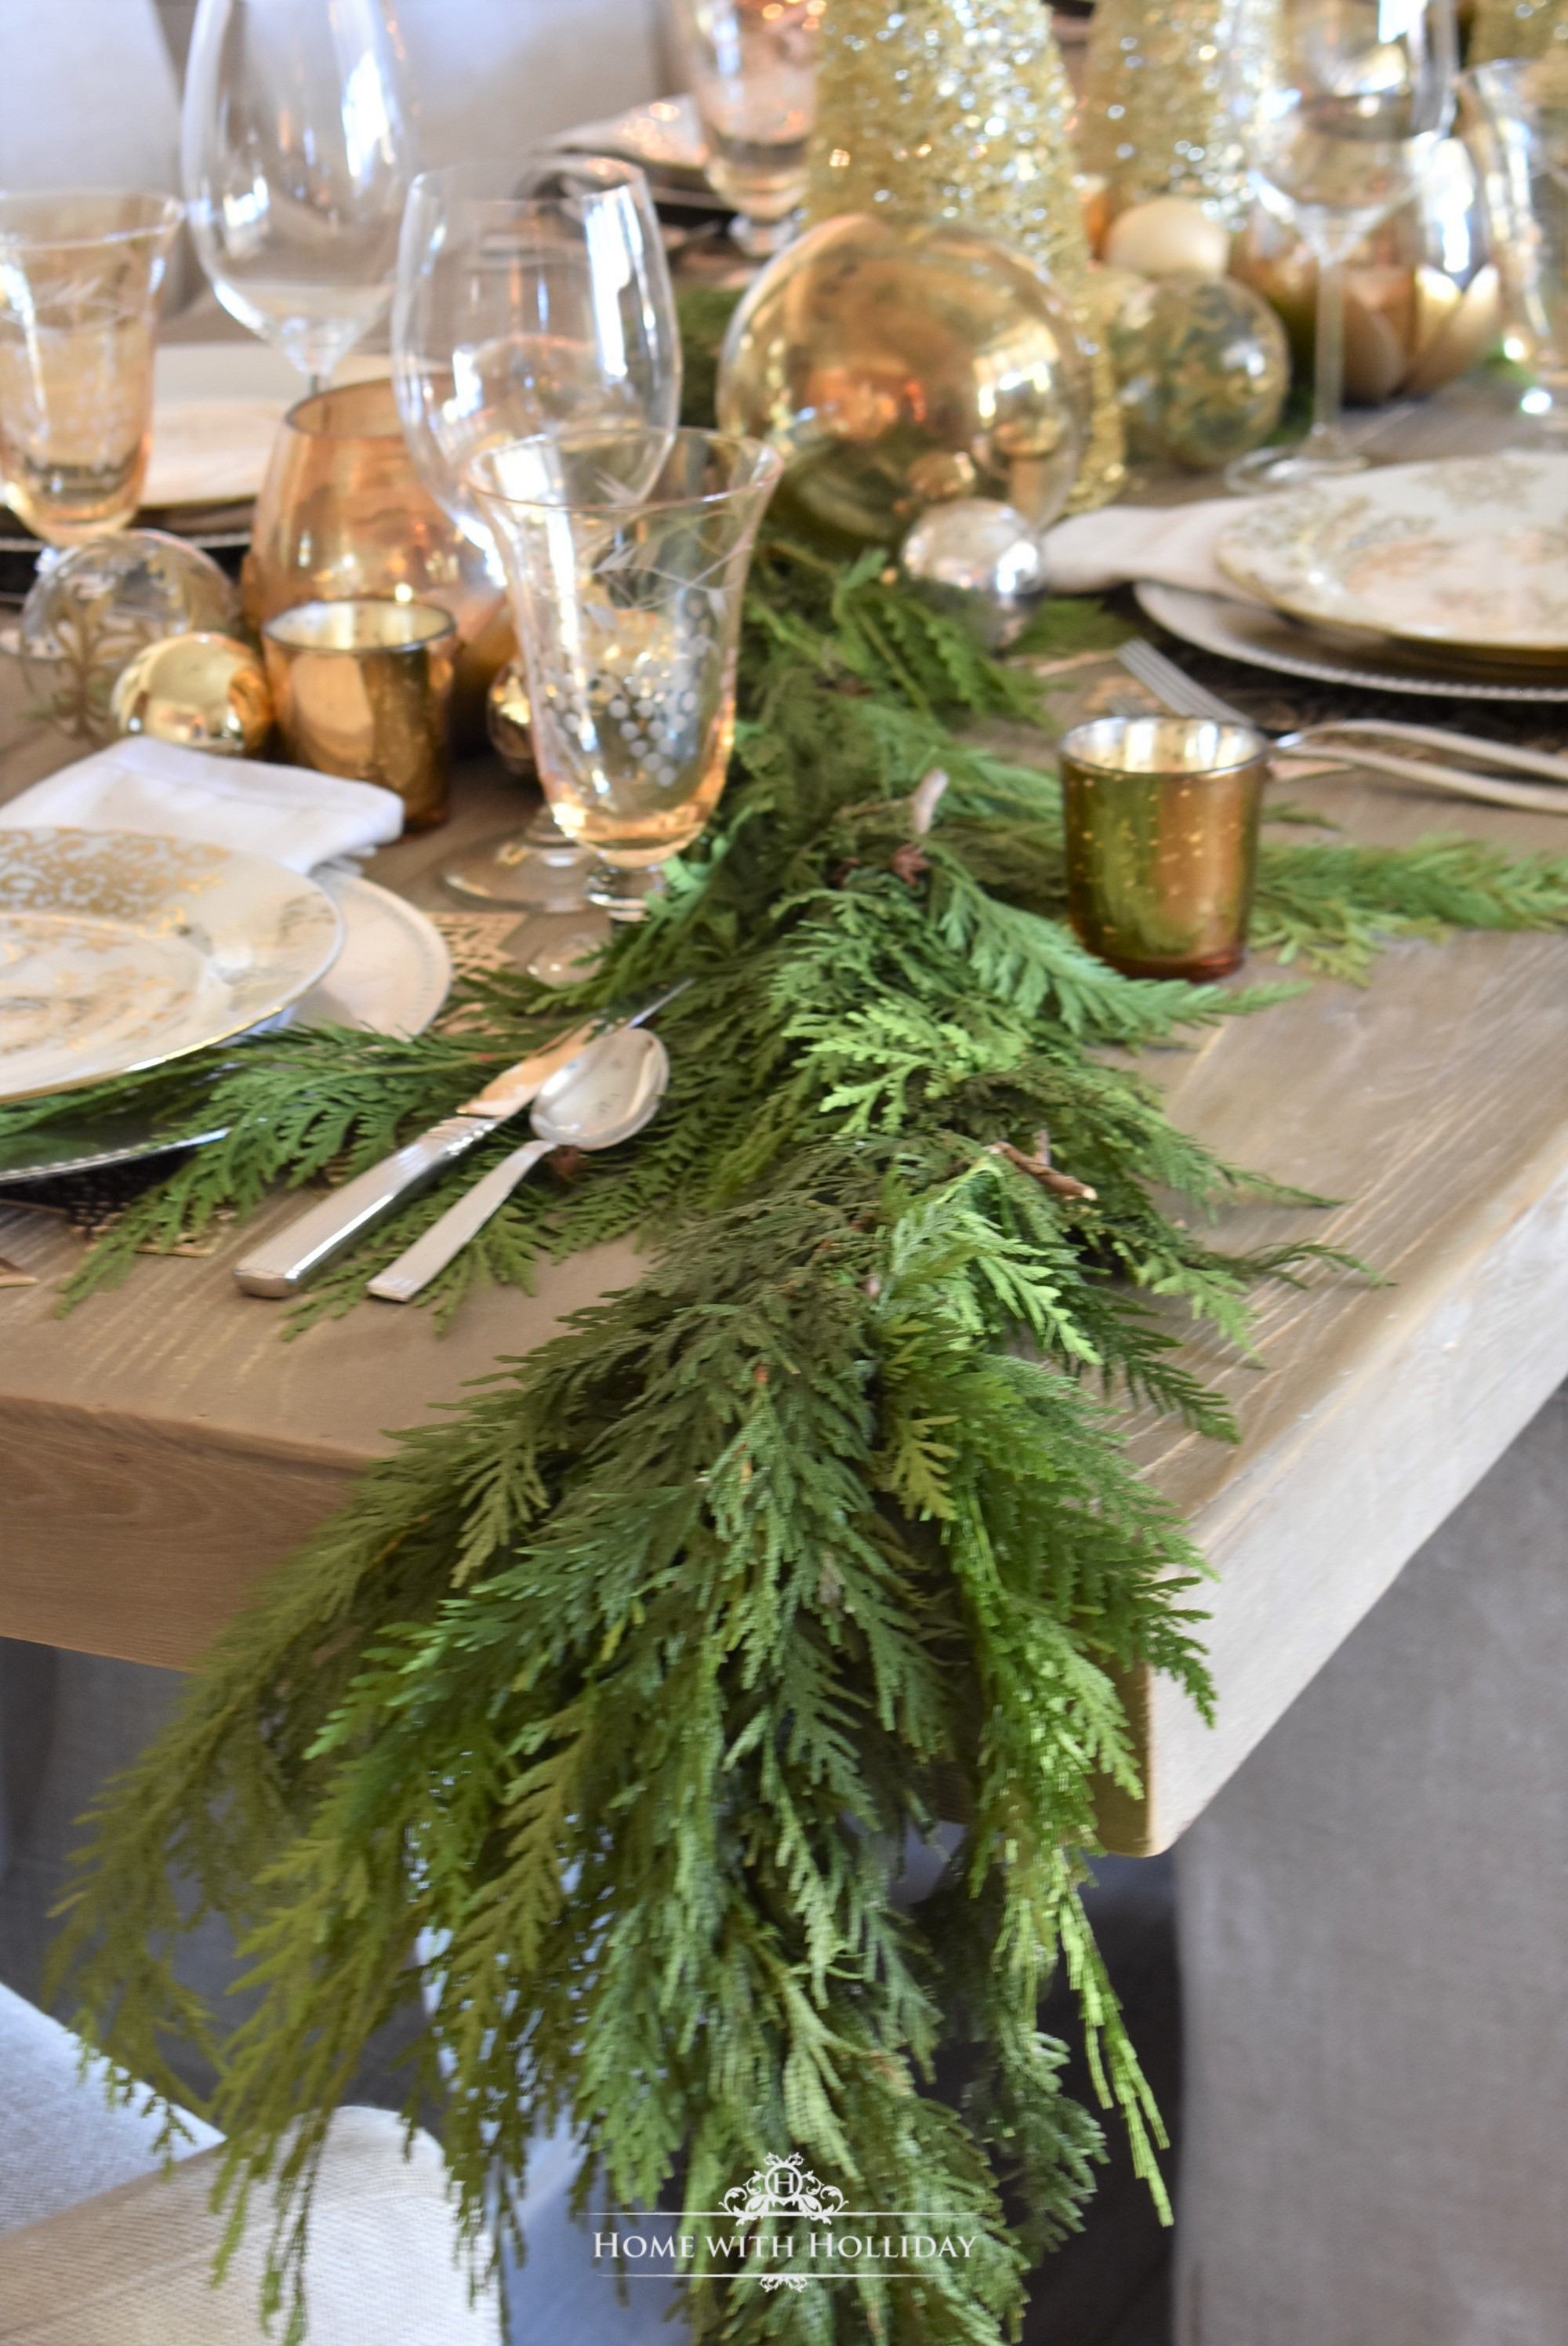 Greenery for a Gold and Silver Snowflake Christmas Table Setting - Home with Holliday